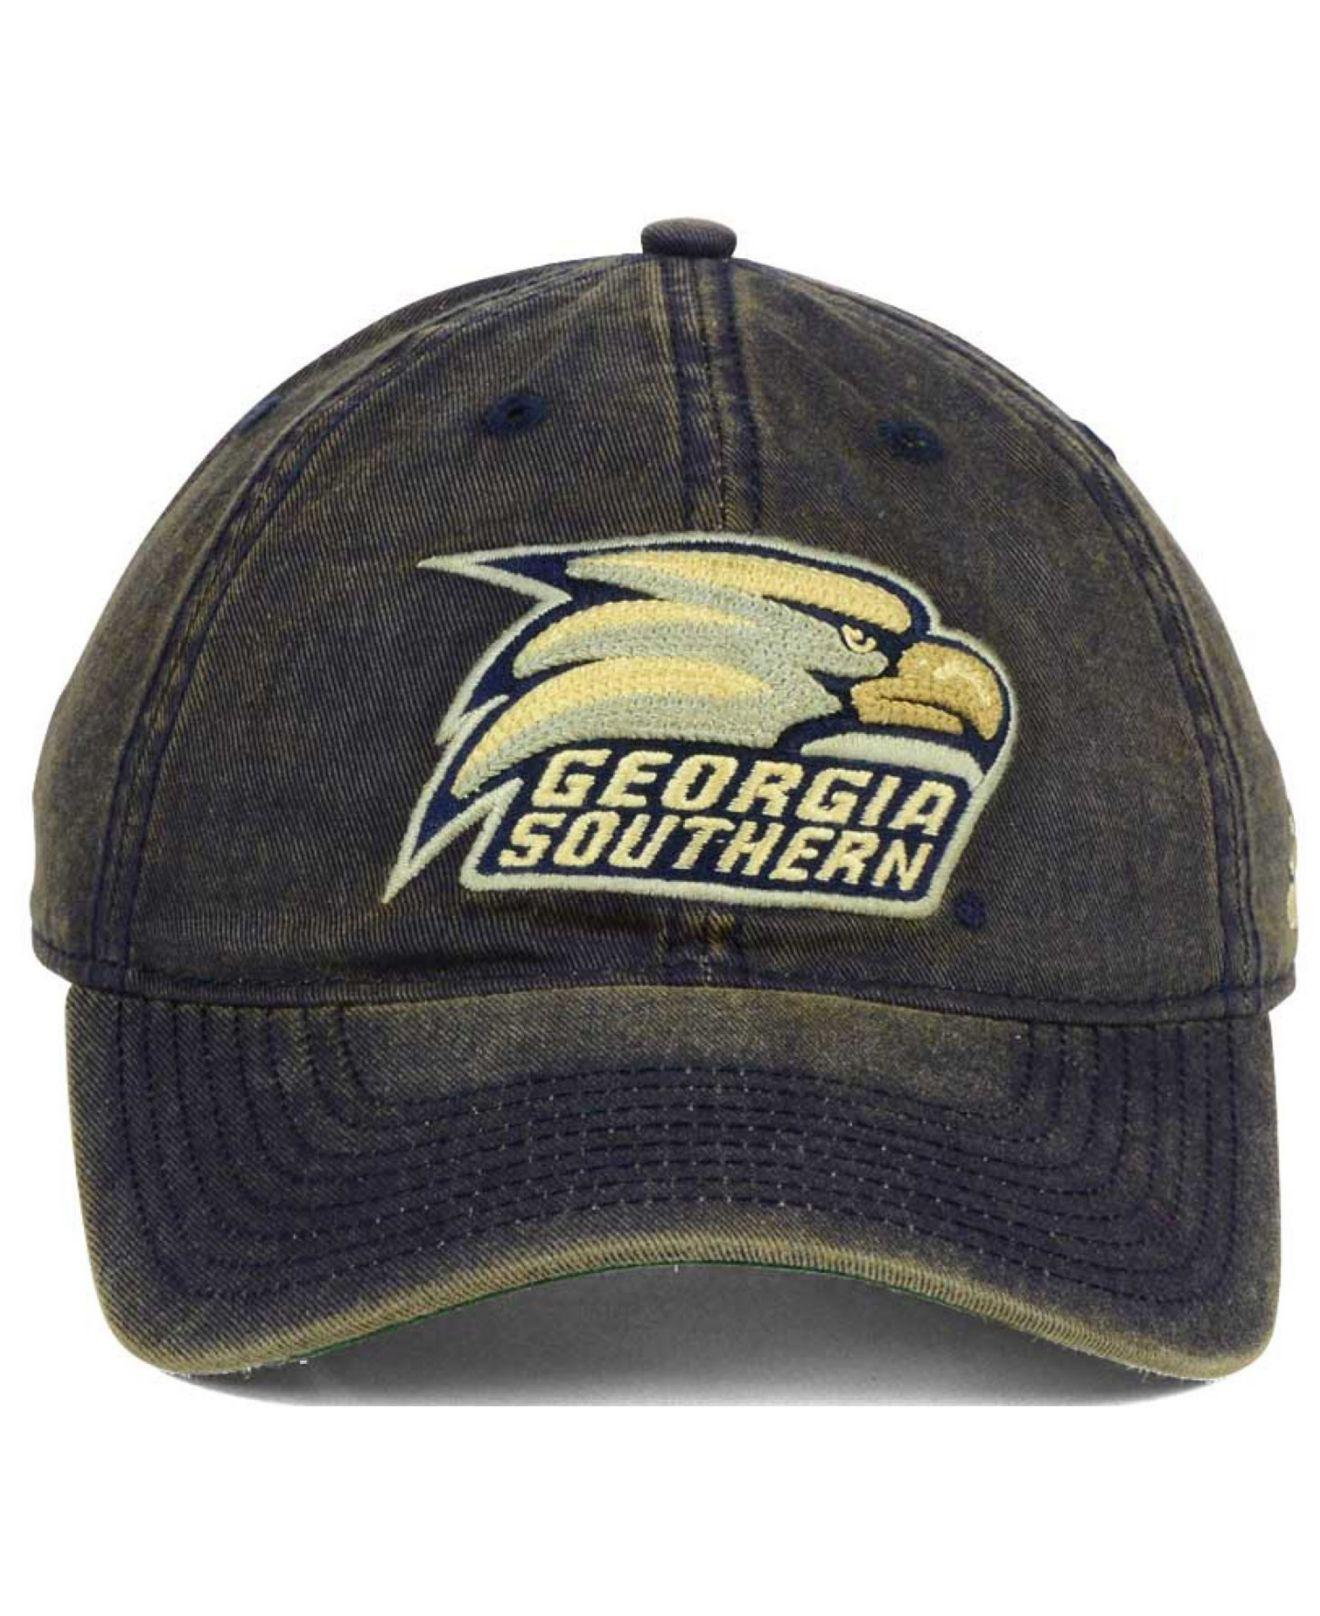 big sale a0774 cbfa0 ... official store lyst adidas georgia southern eagles over dye slouch cap  in blue 4cb52 ab164